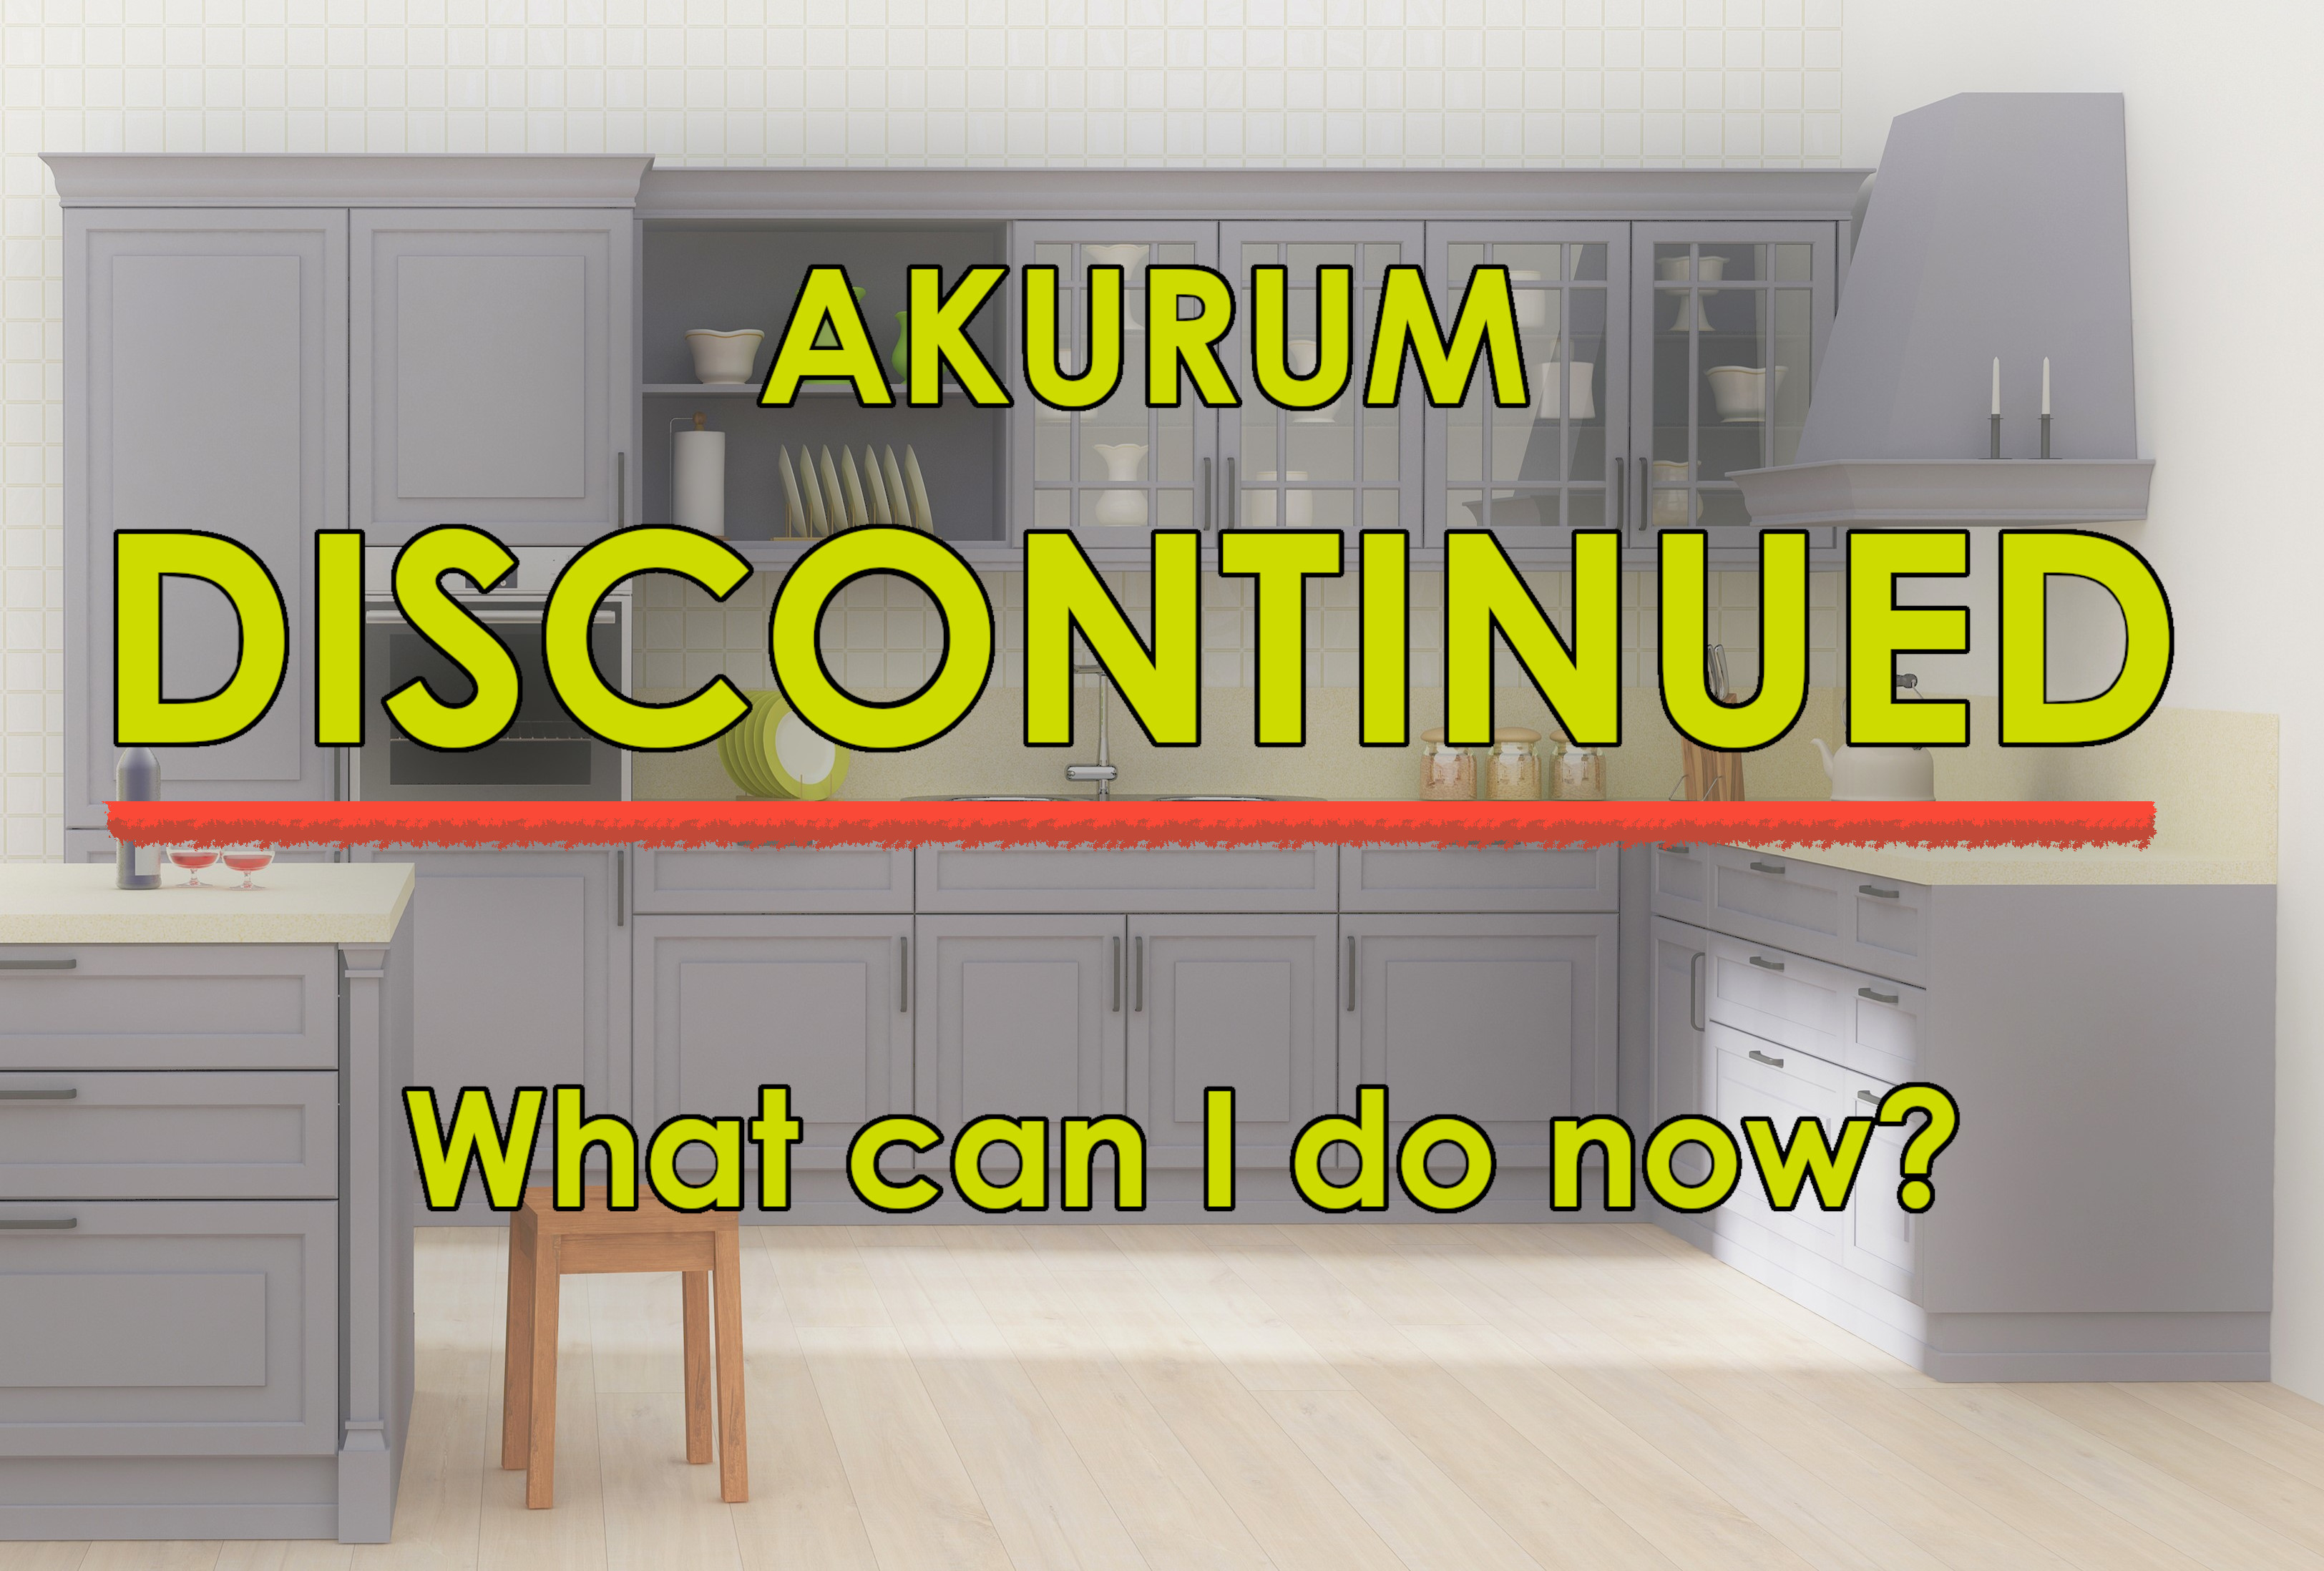 IKEA discontinued the Akurum kitchen! What can I do now?